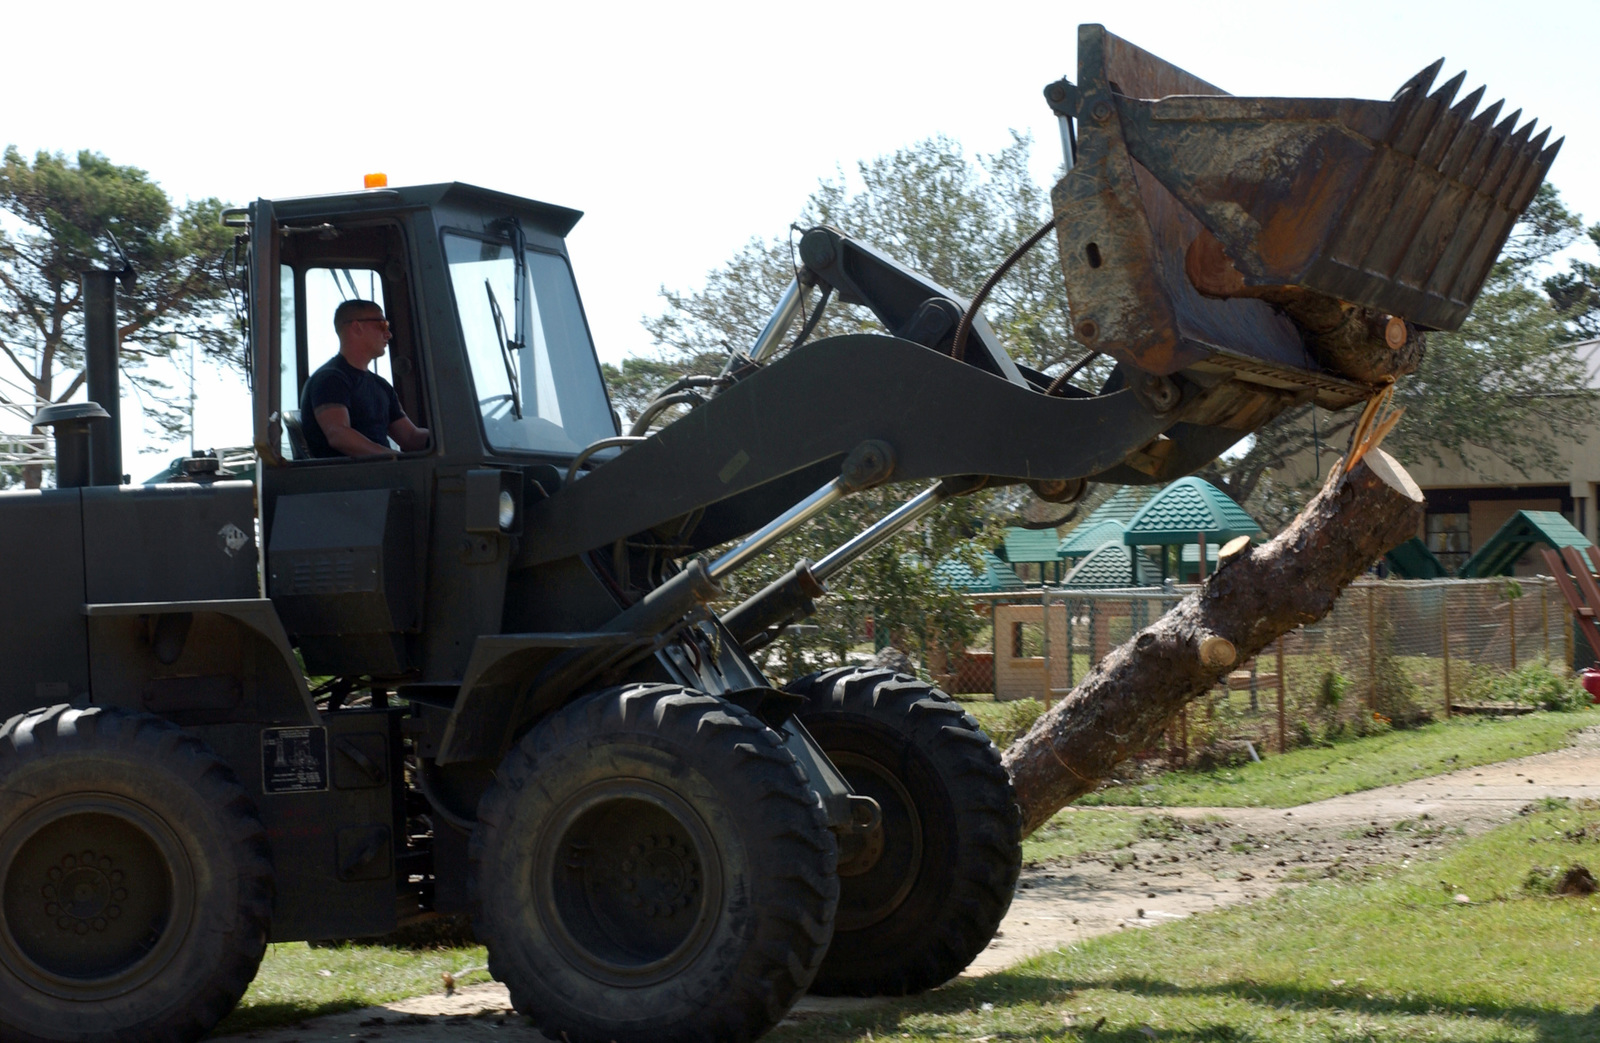 U.S. Air Force STAFF SGT. Bobby Young, 16th Civil Engineering Squadron, uses an International wheel loader to clear fallen trees on Hurlburt Field, Fla., Sept. 19, 2004.  The base has suffered extensive damage after Hurricane Ivan made landfall earlier in the week.   (US Air Force PHOTO by AIRMAN First Class Kimberly Gilligan) (RELEASED)